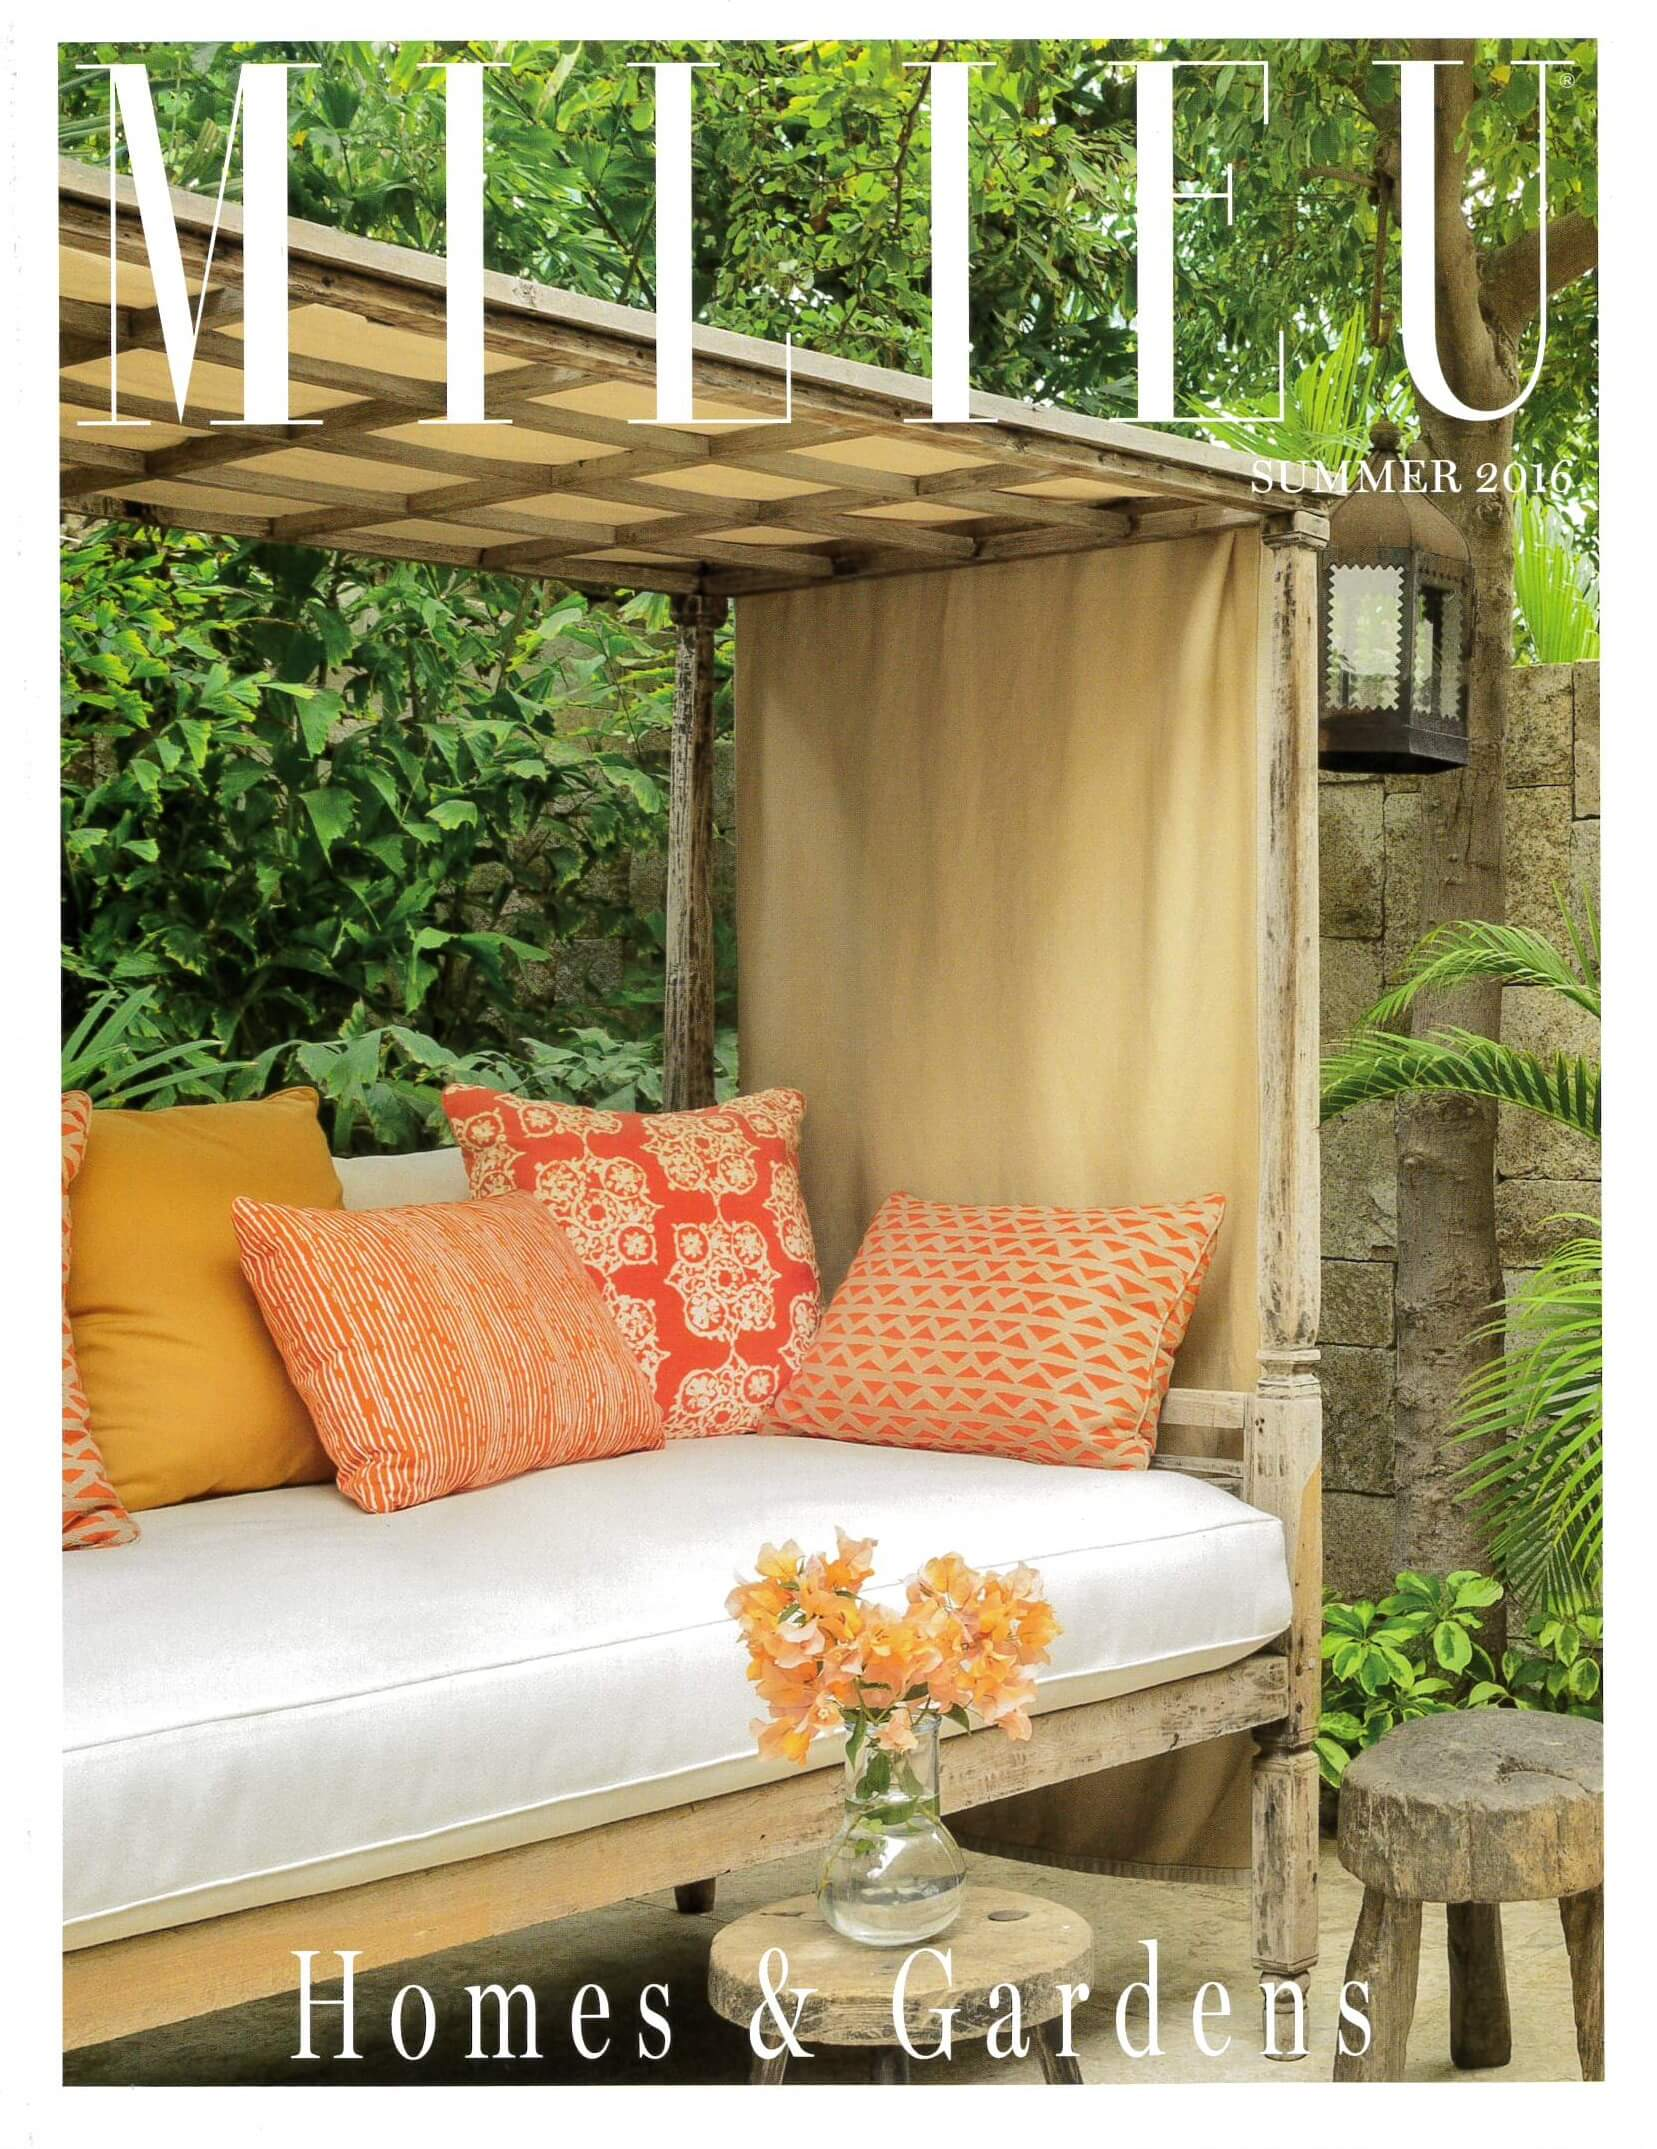 Milieu Magazine Summer 2016 cover